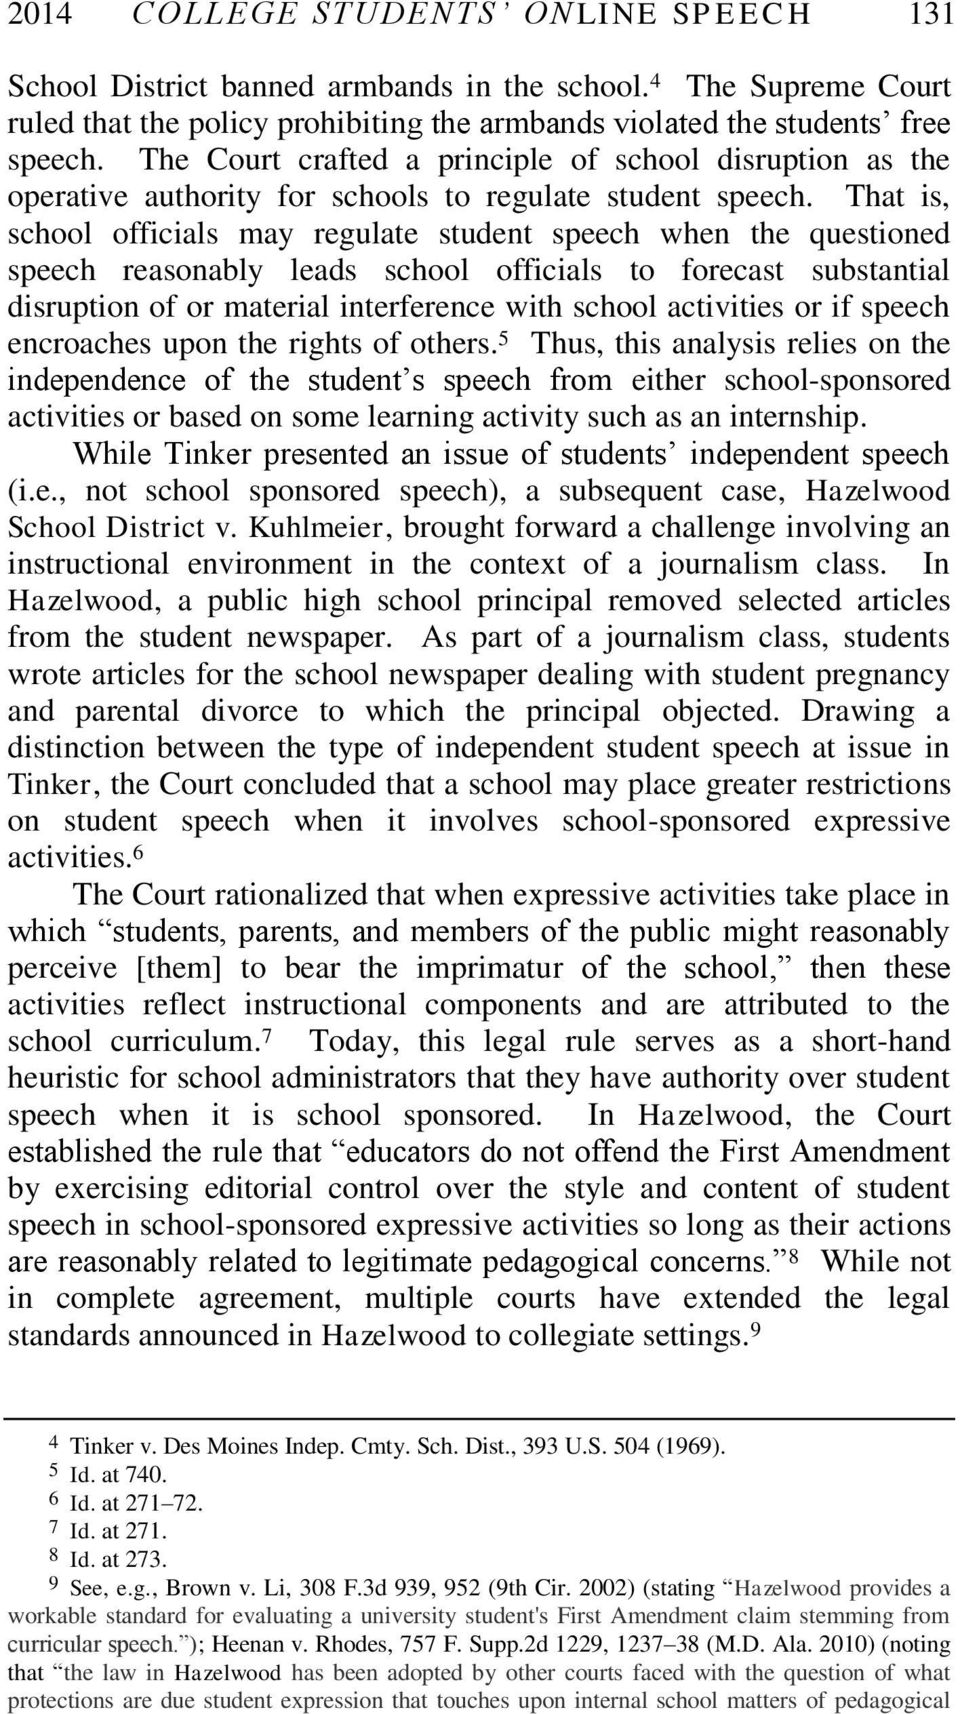 That is, school officials may regulate student speech when the questioned speech reasonably leads school officials to forecast substantial disruption of or material interference with school